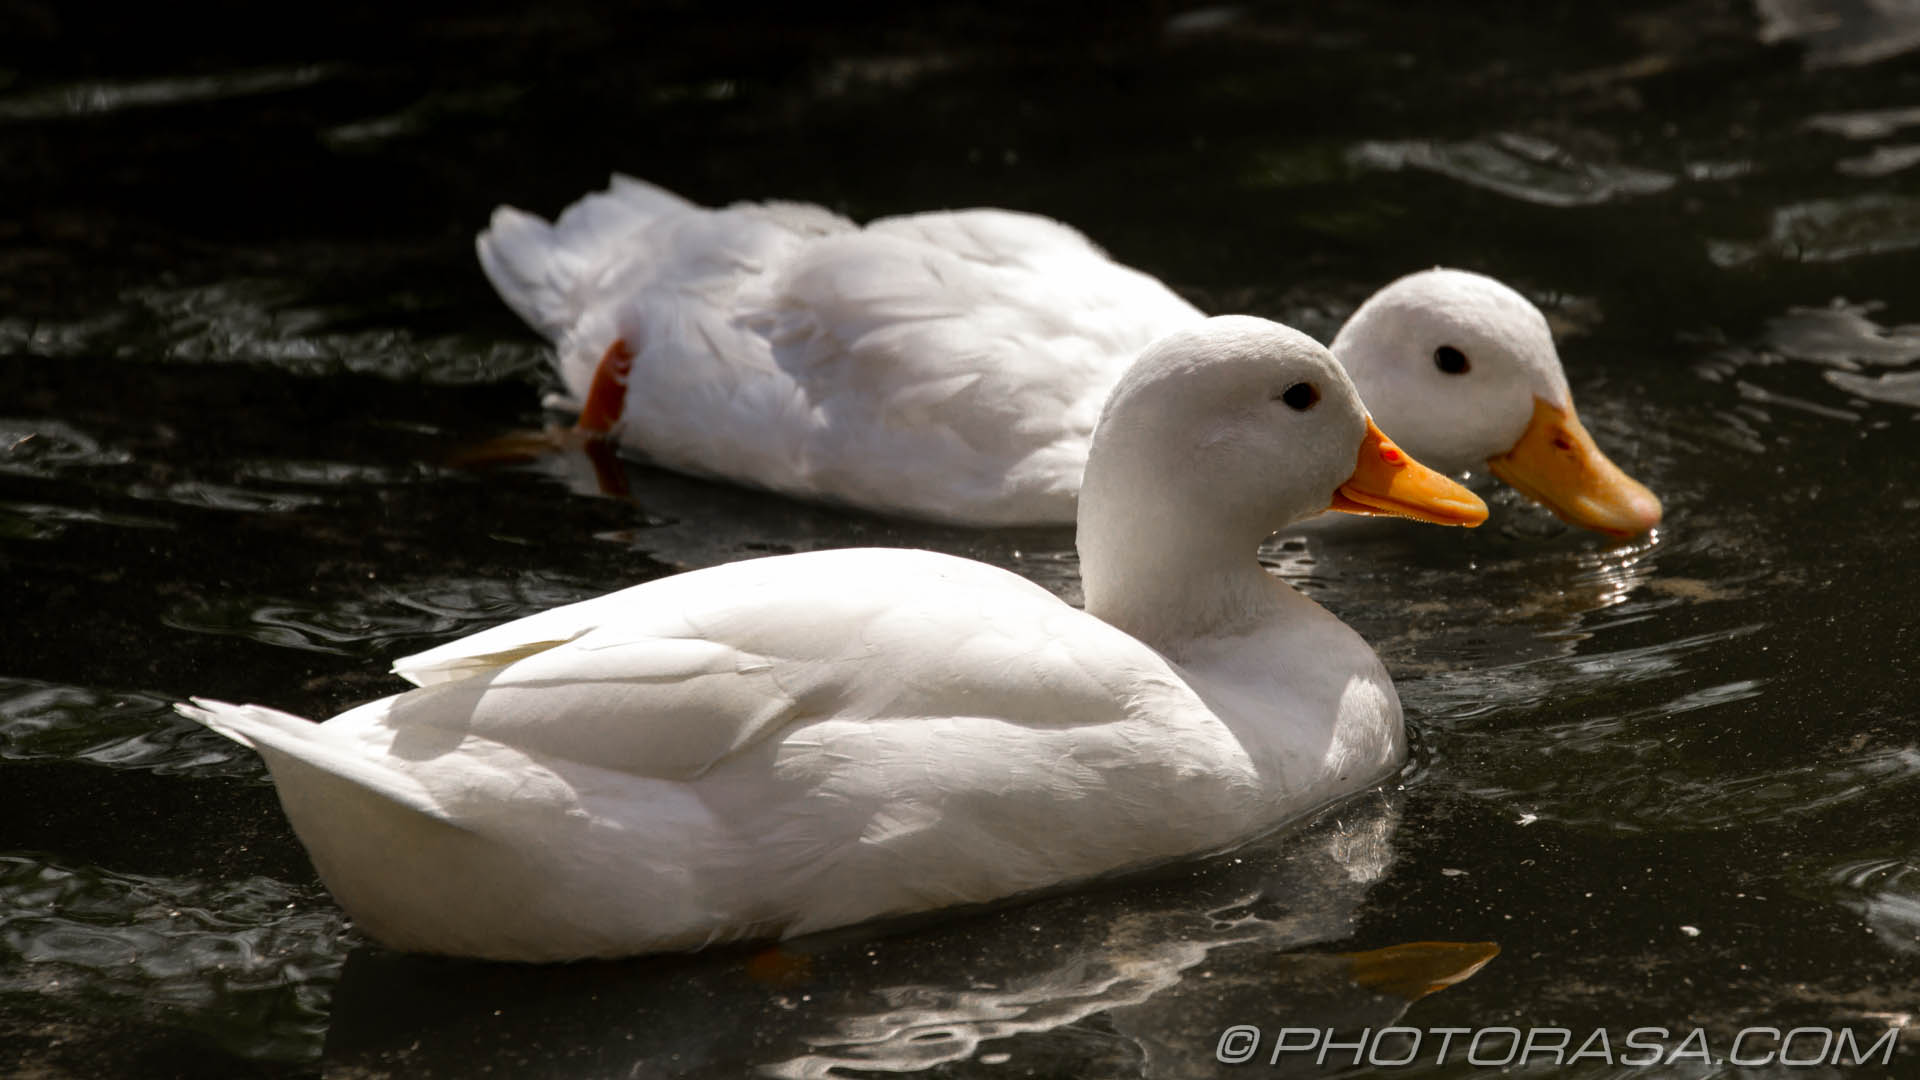 https://photorasa.com/birds-greenworld/two-white-ducks-looking-for-food/